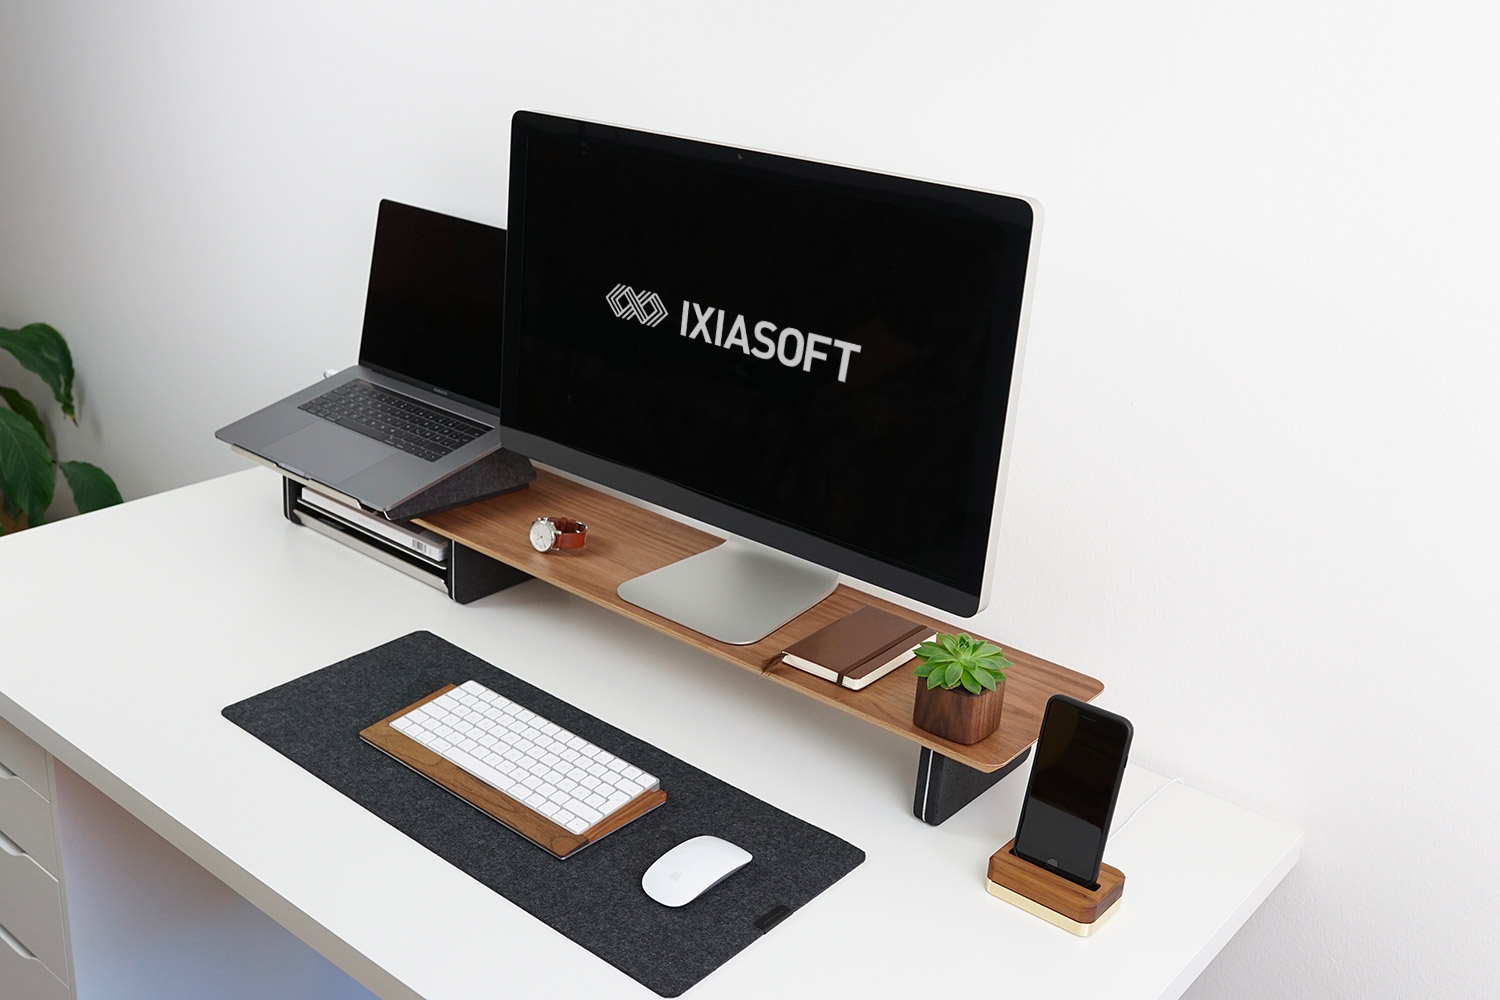 A desktop, laptop, and Iphone on a white desk.